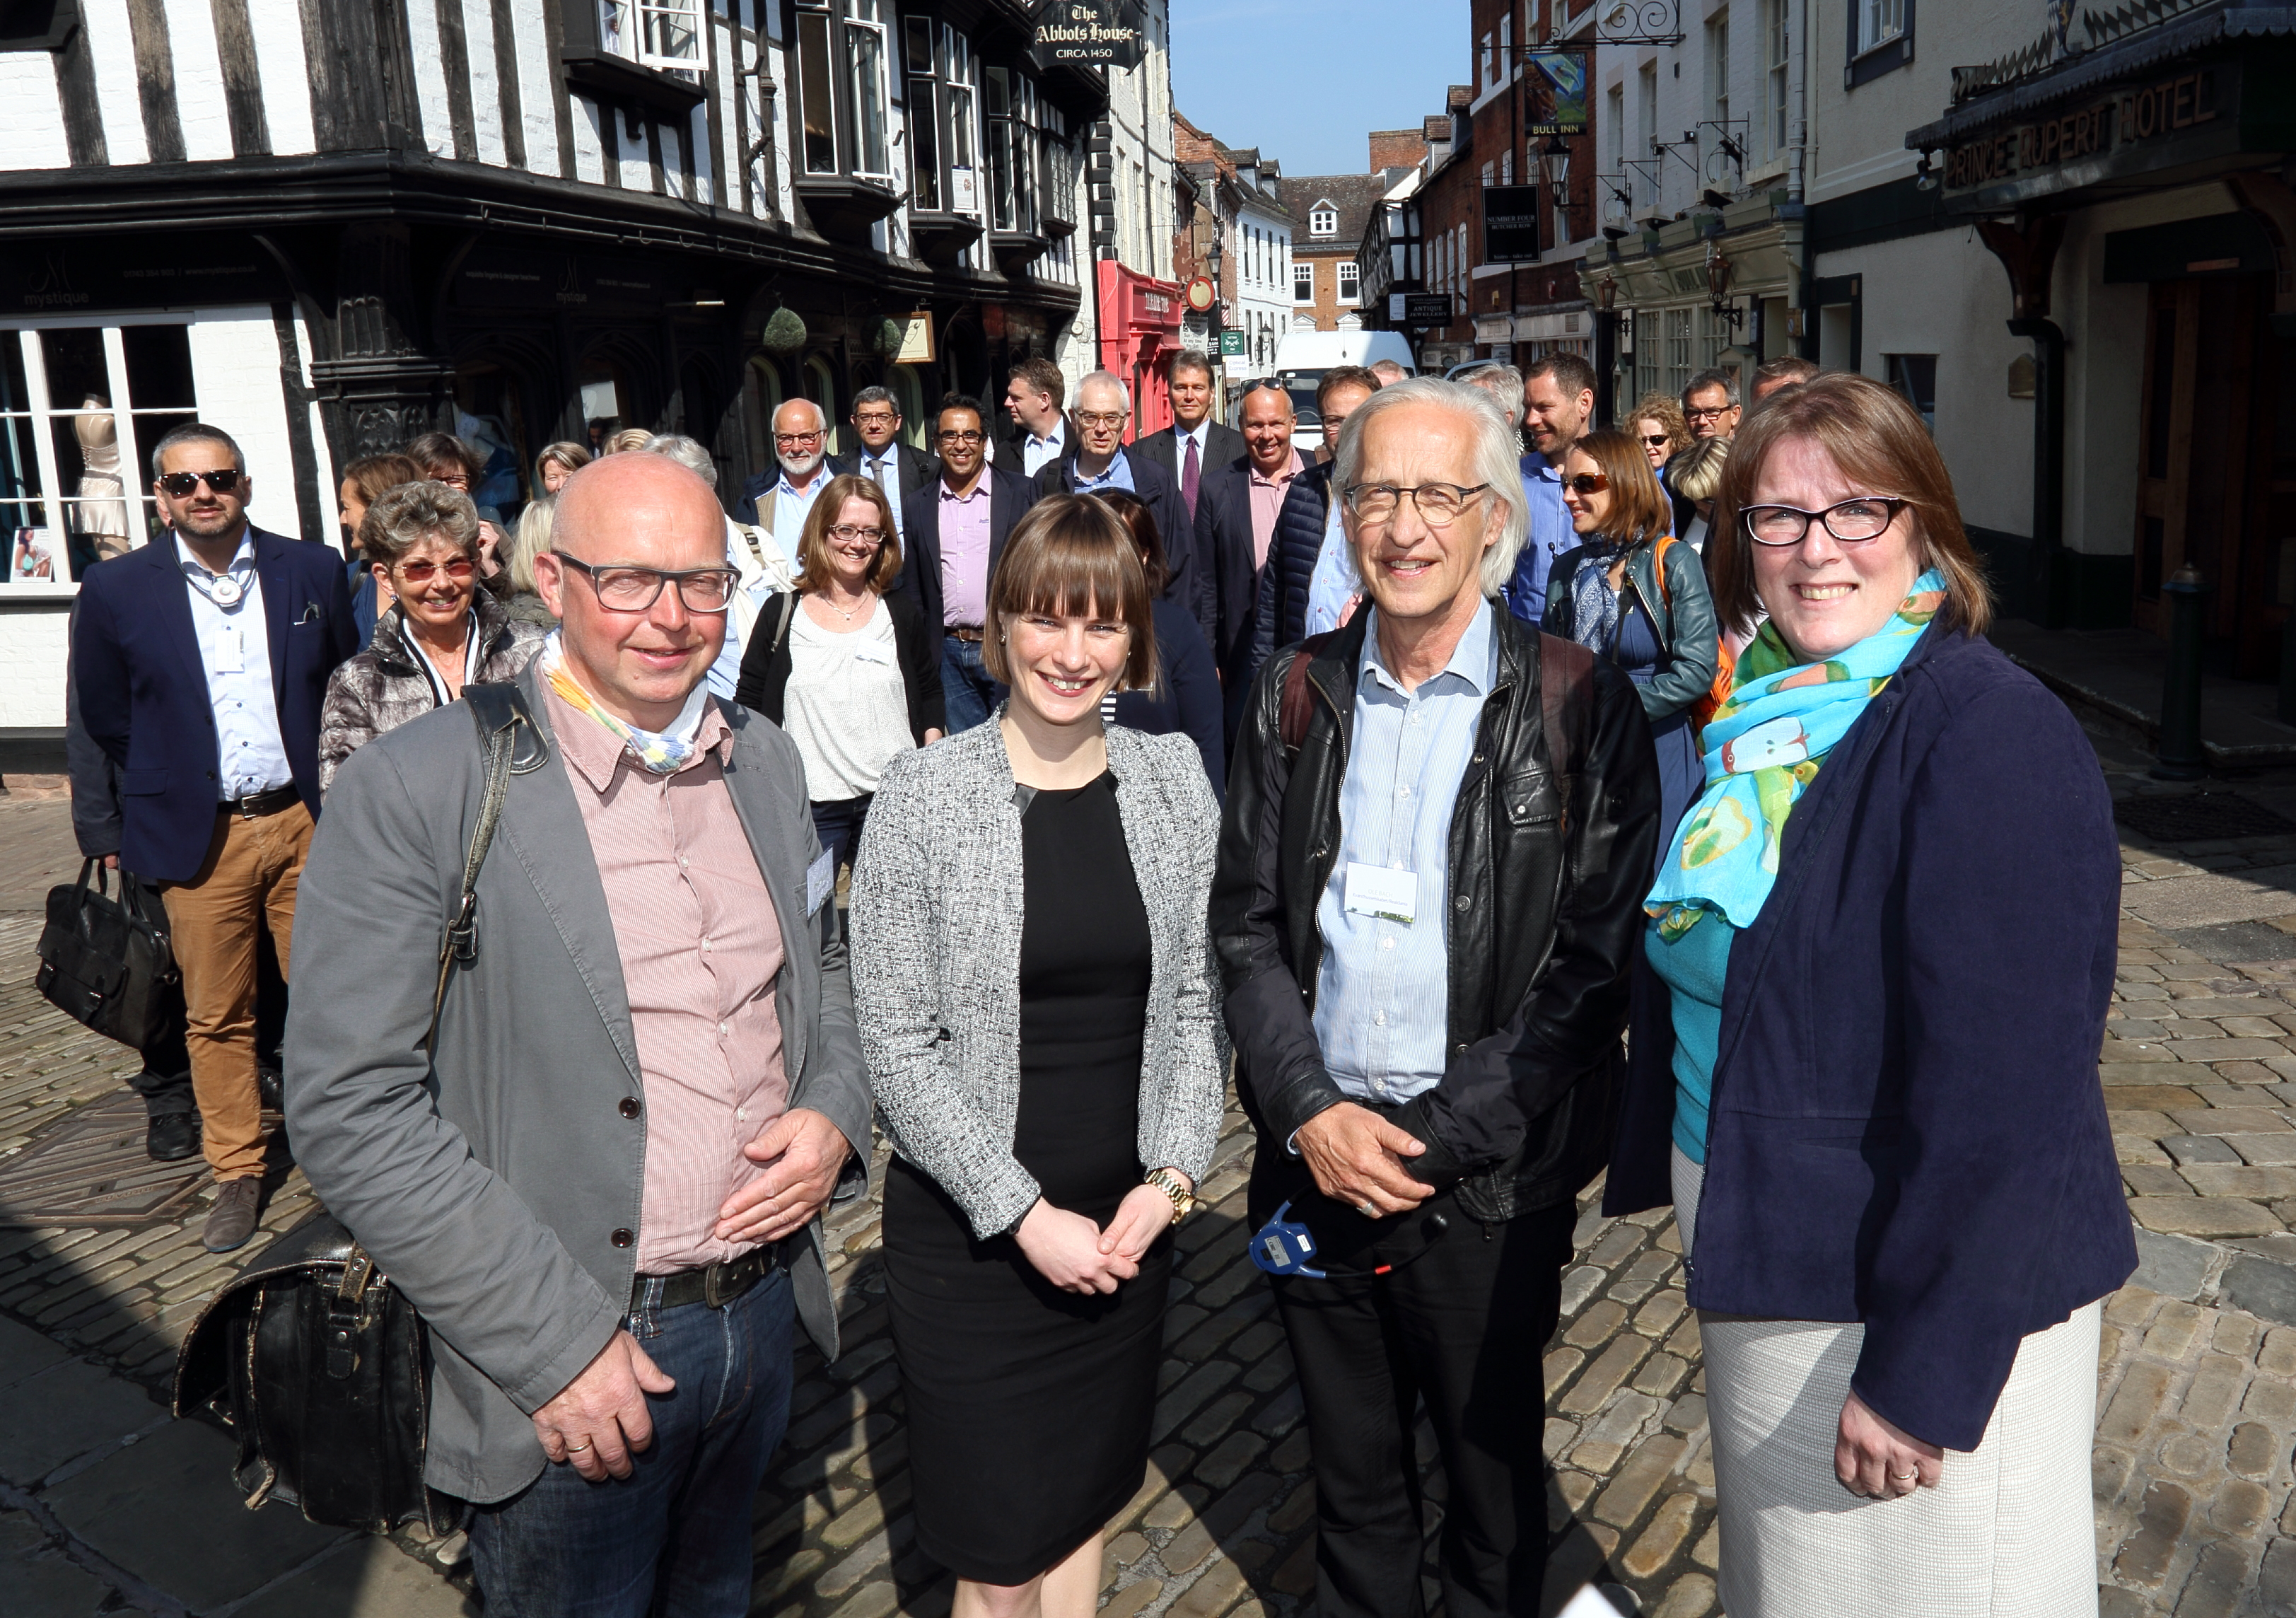 Shrewsbury BID welcomes Danish delegates